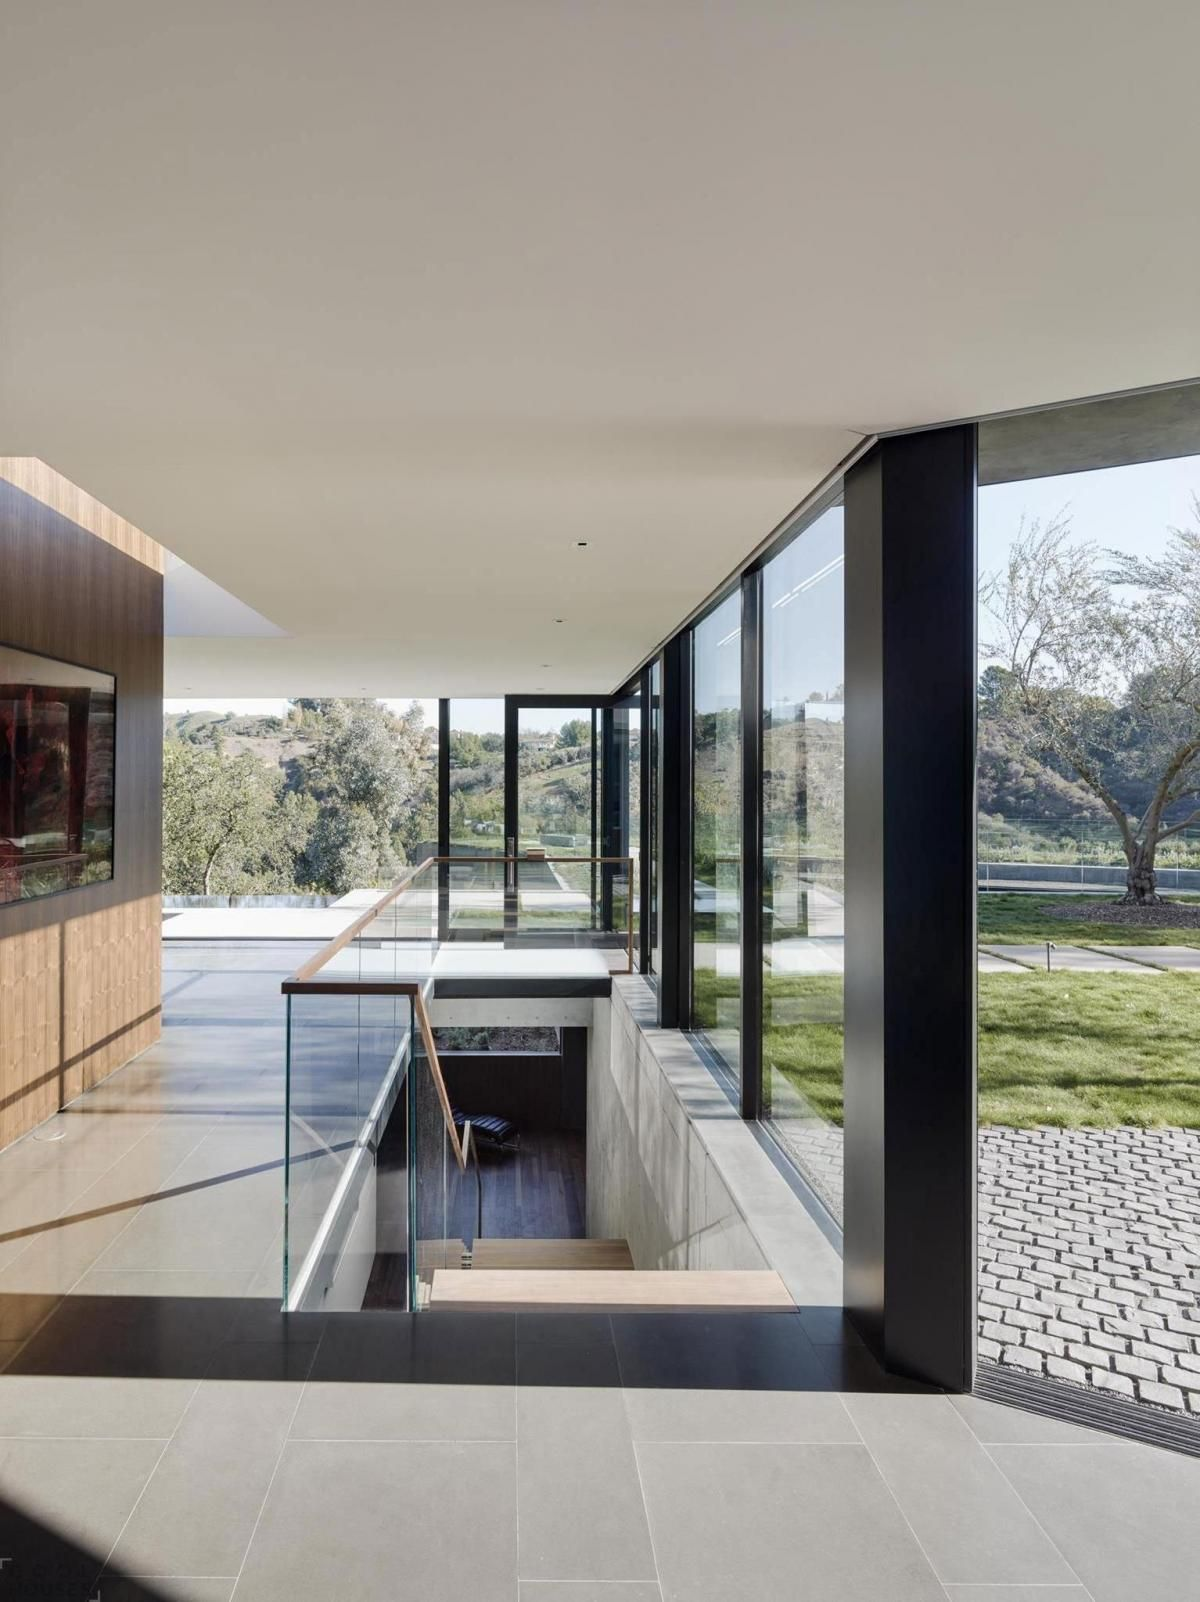 Amazing Design Of Glass Walls And Sliding Doors From The